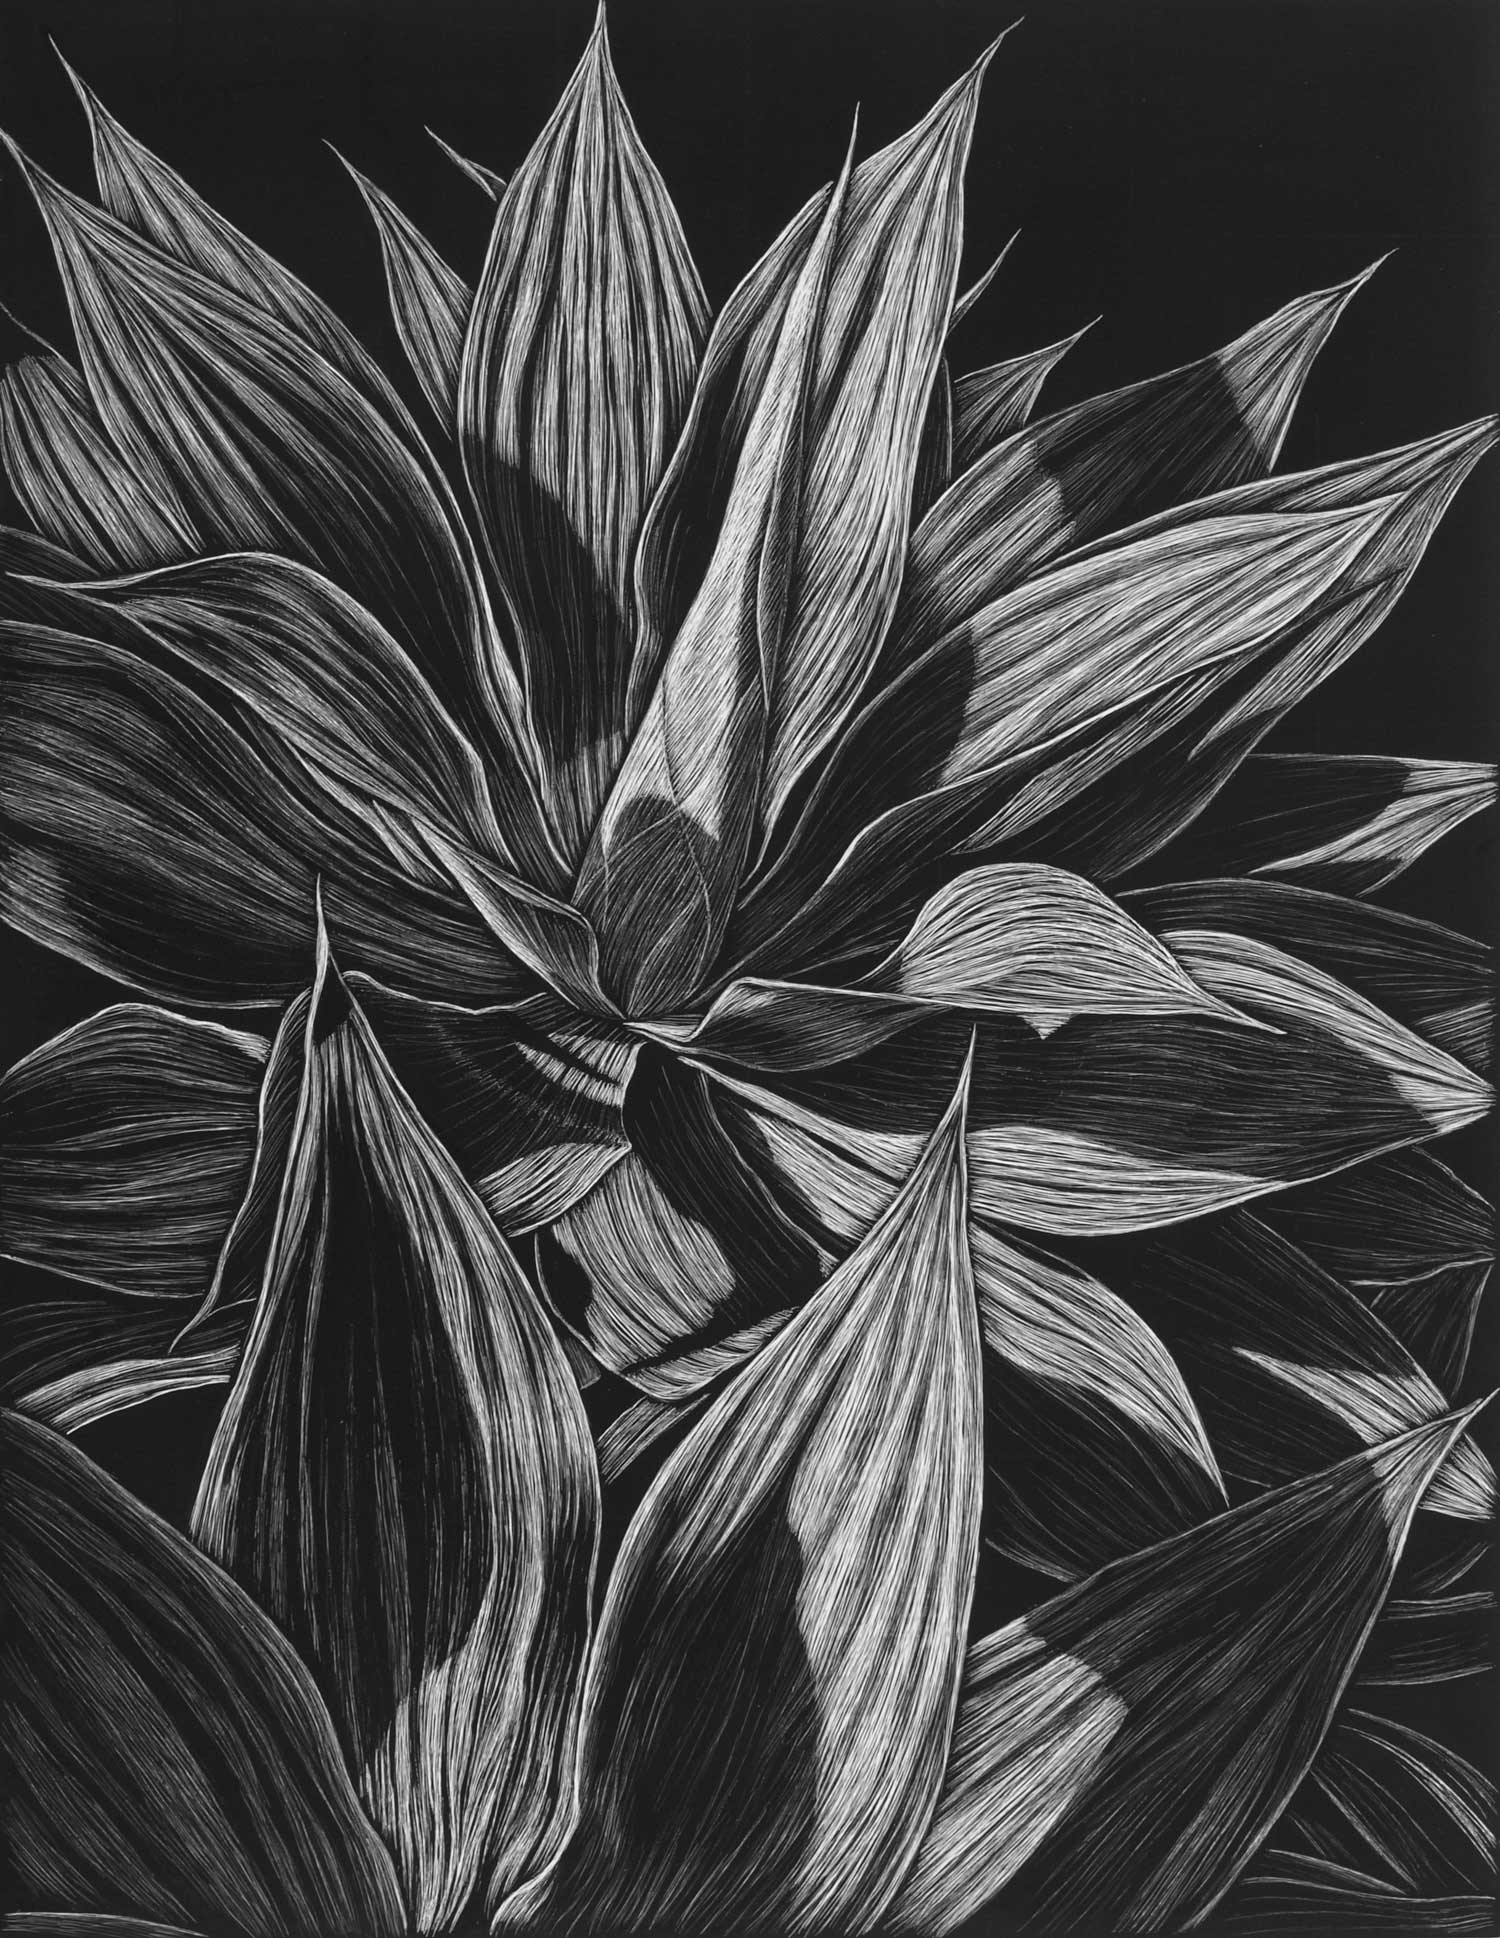 AGAVE, CLAREVILLE BEACH III  45.5 X 35.5 CM, EDITION OF 50  PIGMENT ON COTTON RAG PAPER  $800